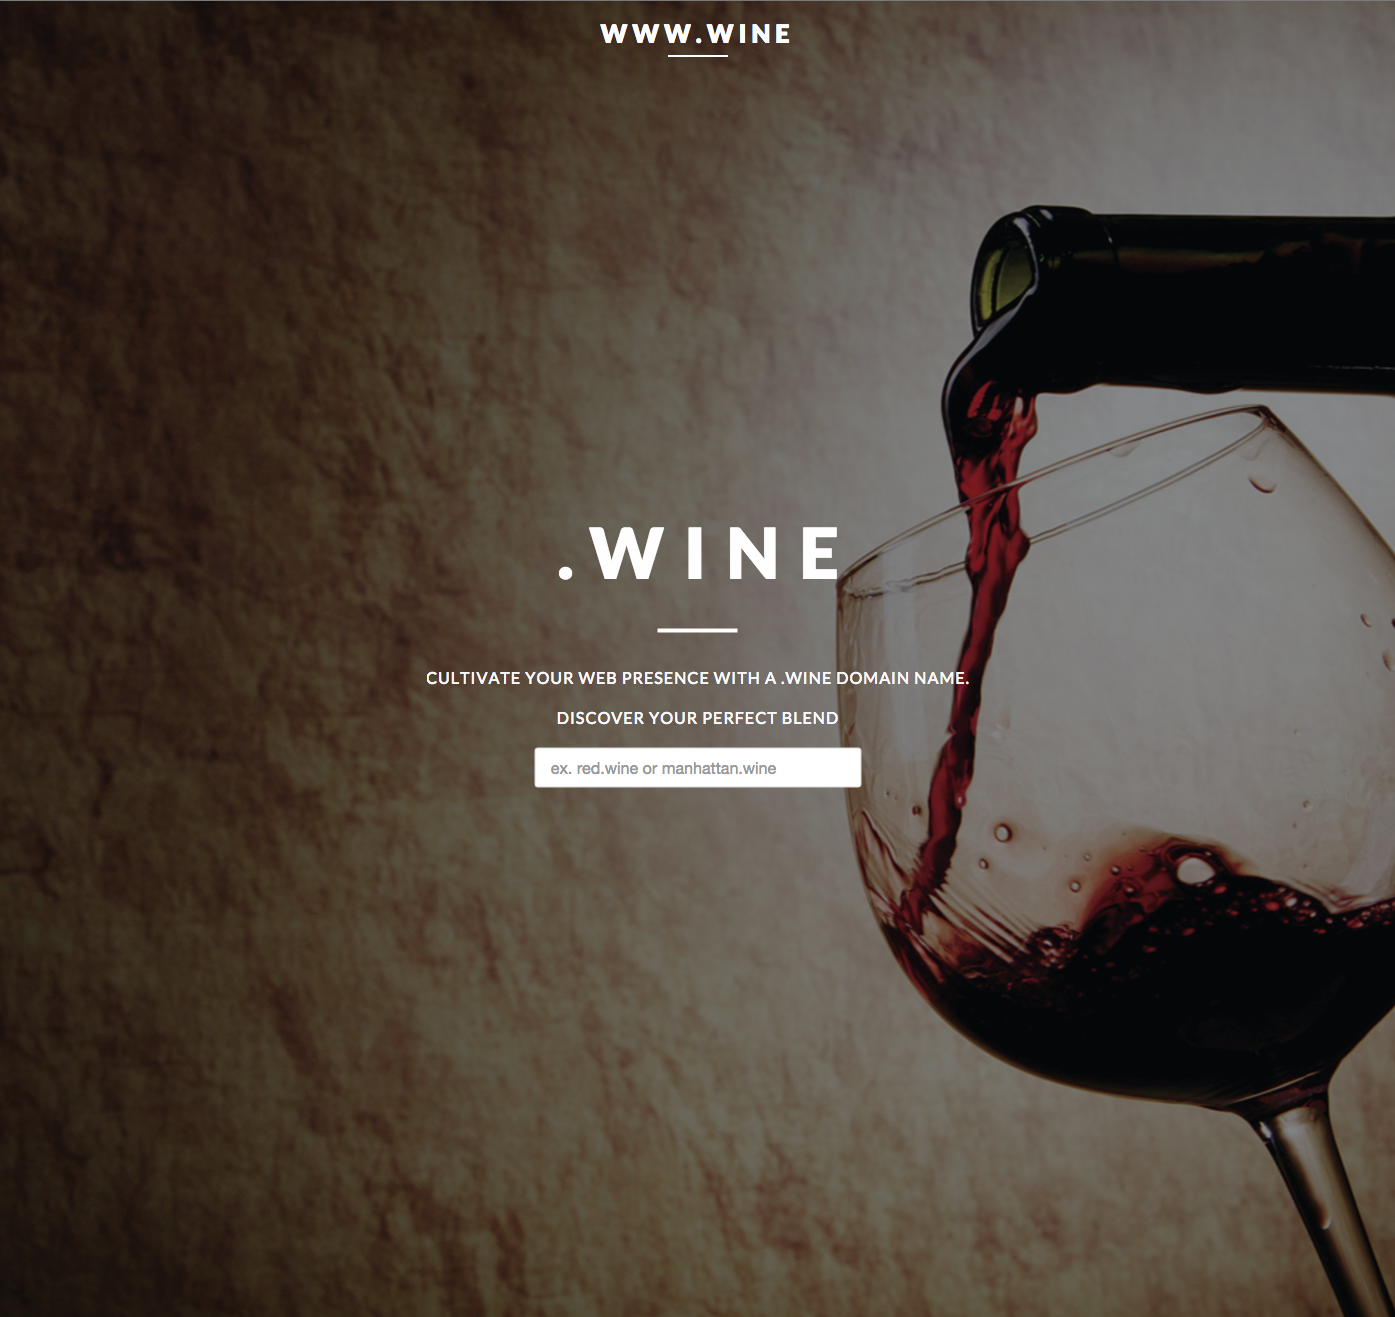 www.wine Website